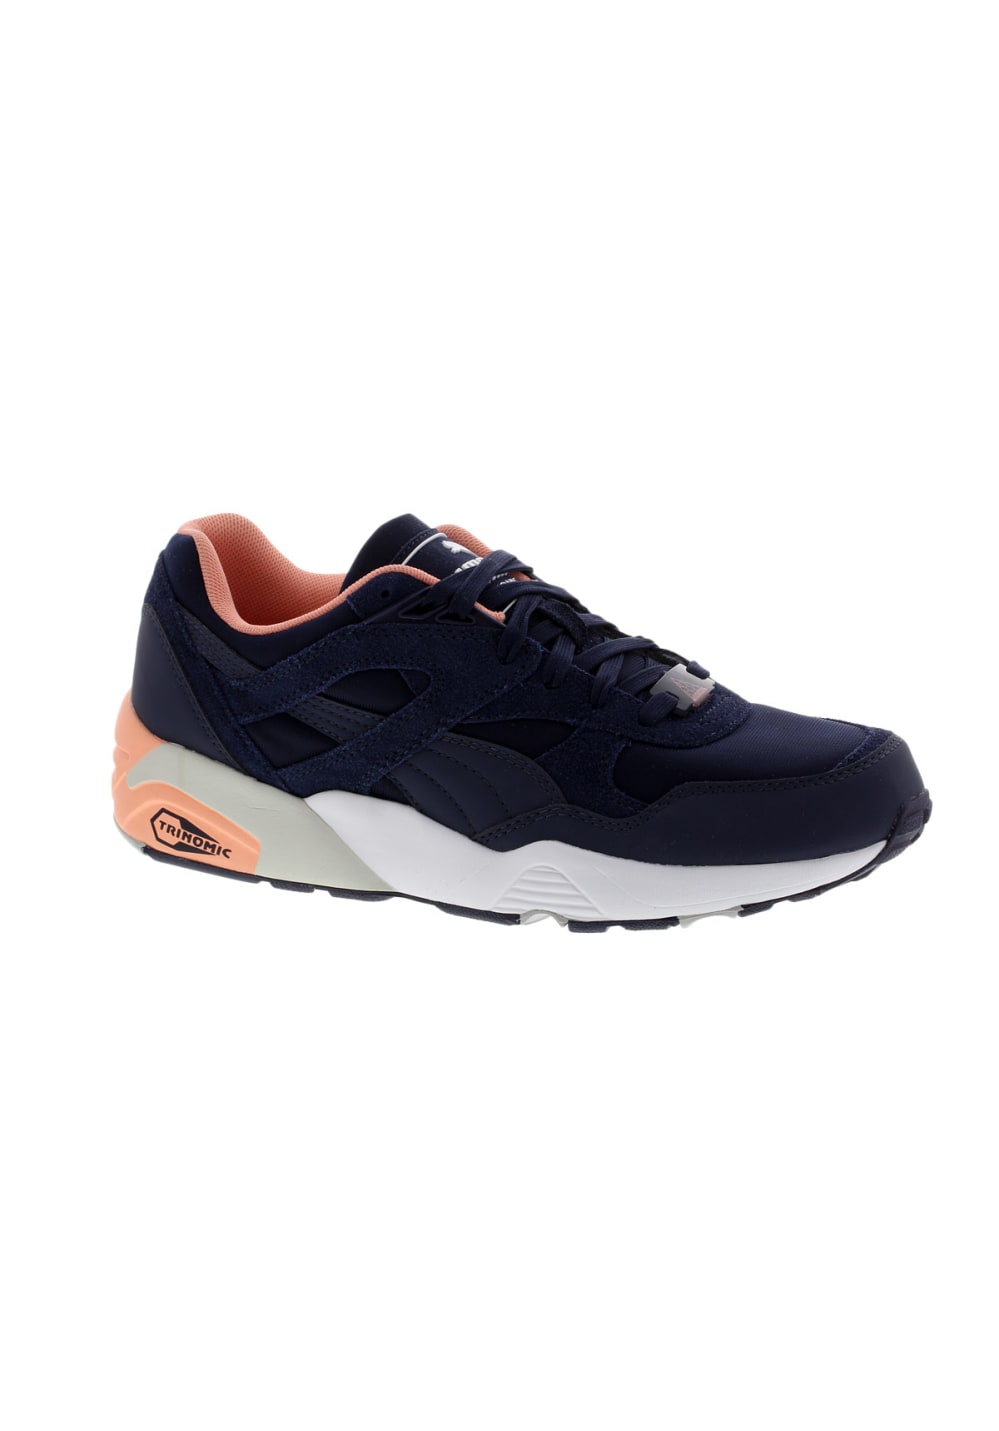 check-out 18c5d f7825 Puma R698 Filtered - Baskets pour Femme - Noir